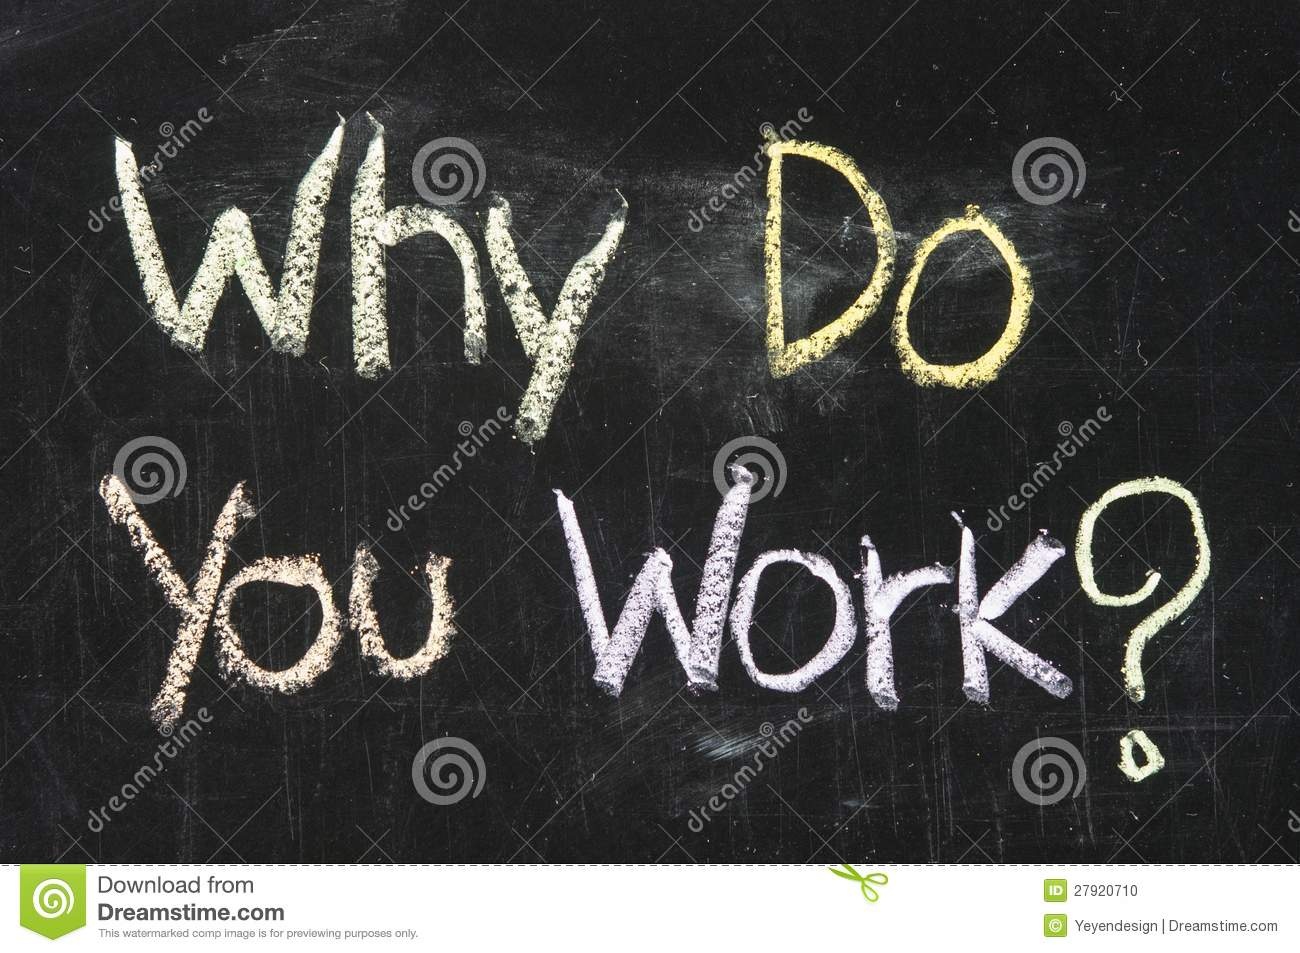 Why Do You Work? Stock Photo  Image 27920710. Basic Residential Lease Agreement Template. Where Can I Buy Essays Template. Microsoft Office Template Downloads Template. Printable Calendar Planner 2018 Template. Sample Of Application Letter To Medical Officer. Loan Officer Sample Resume Template. Entry Level Java Developer Resume Sample. Search Resumes On Monster Free Template